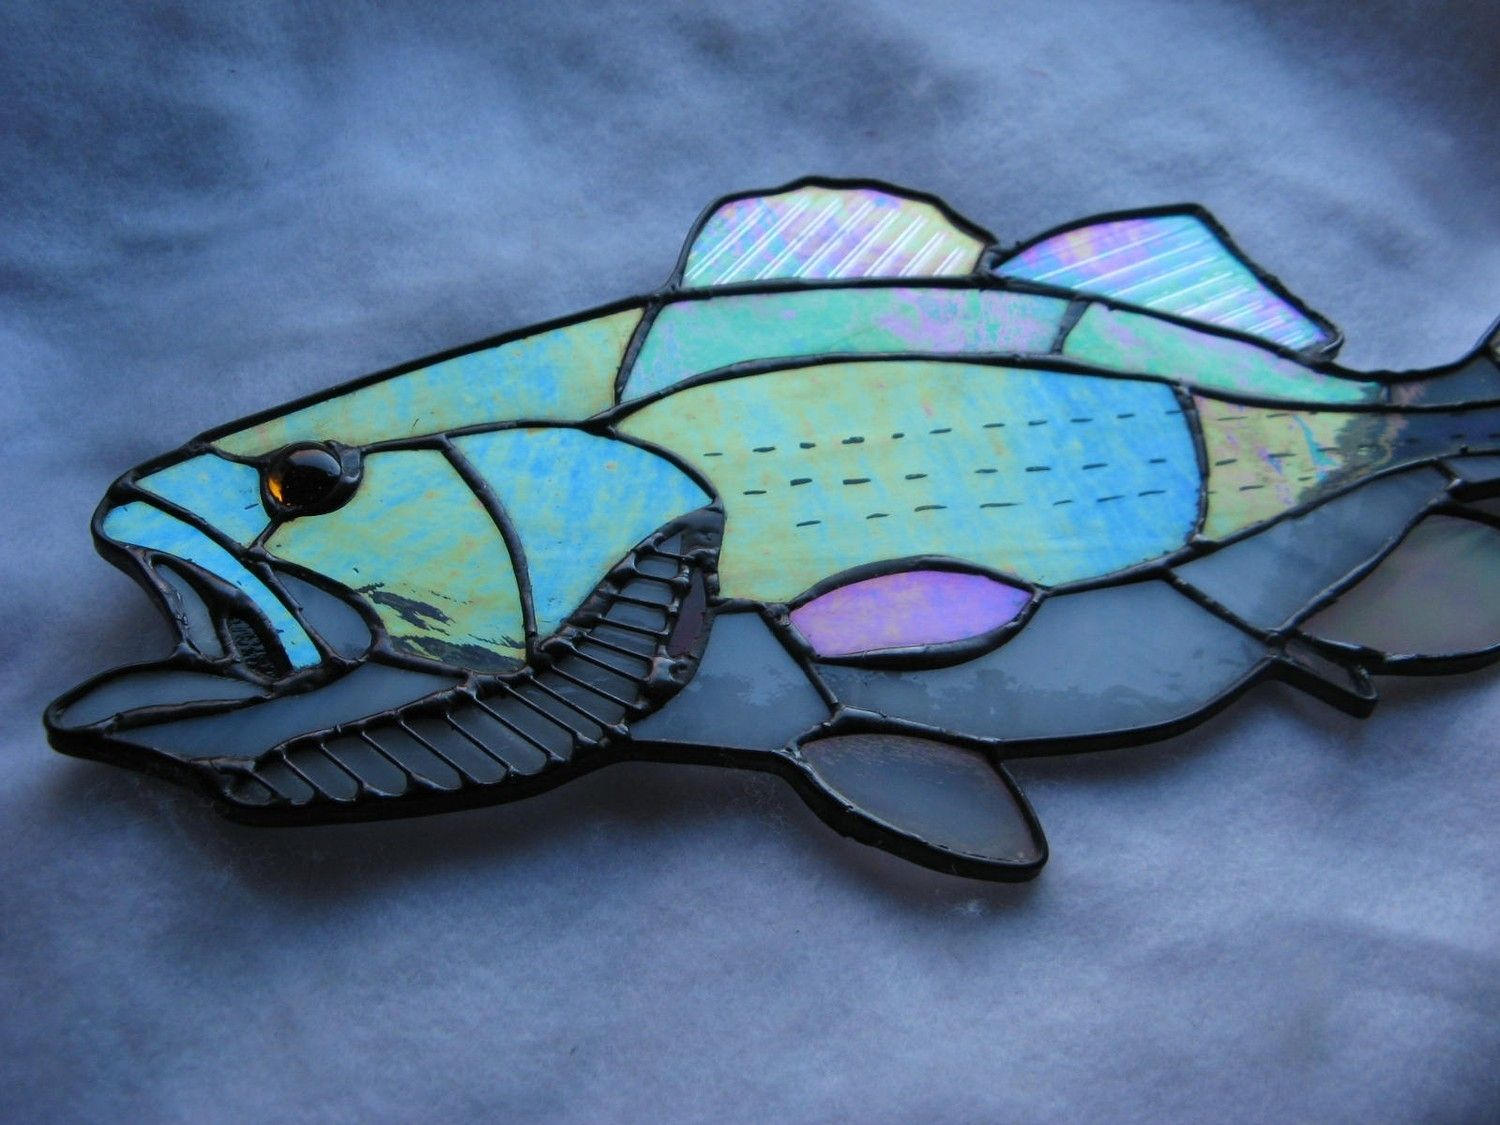 Buy A Hand Made Striped Large Mouth Bass Stained Glass Art Made To Order From Glass Monkey Arts York Stained Glass Custommade Com